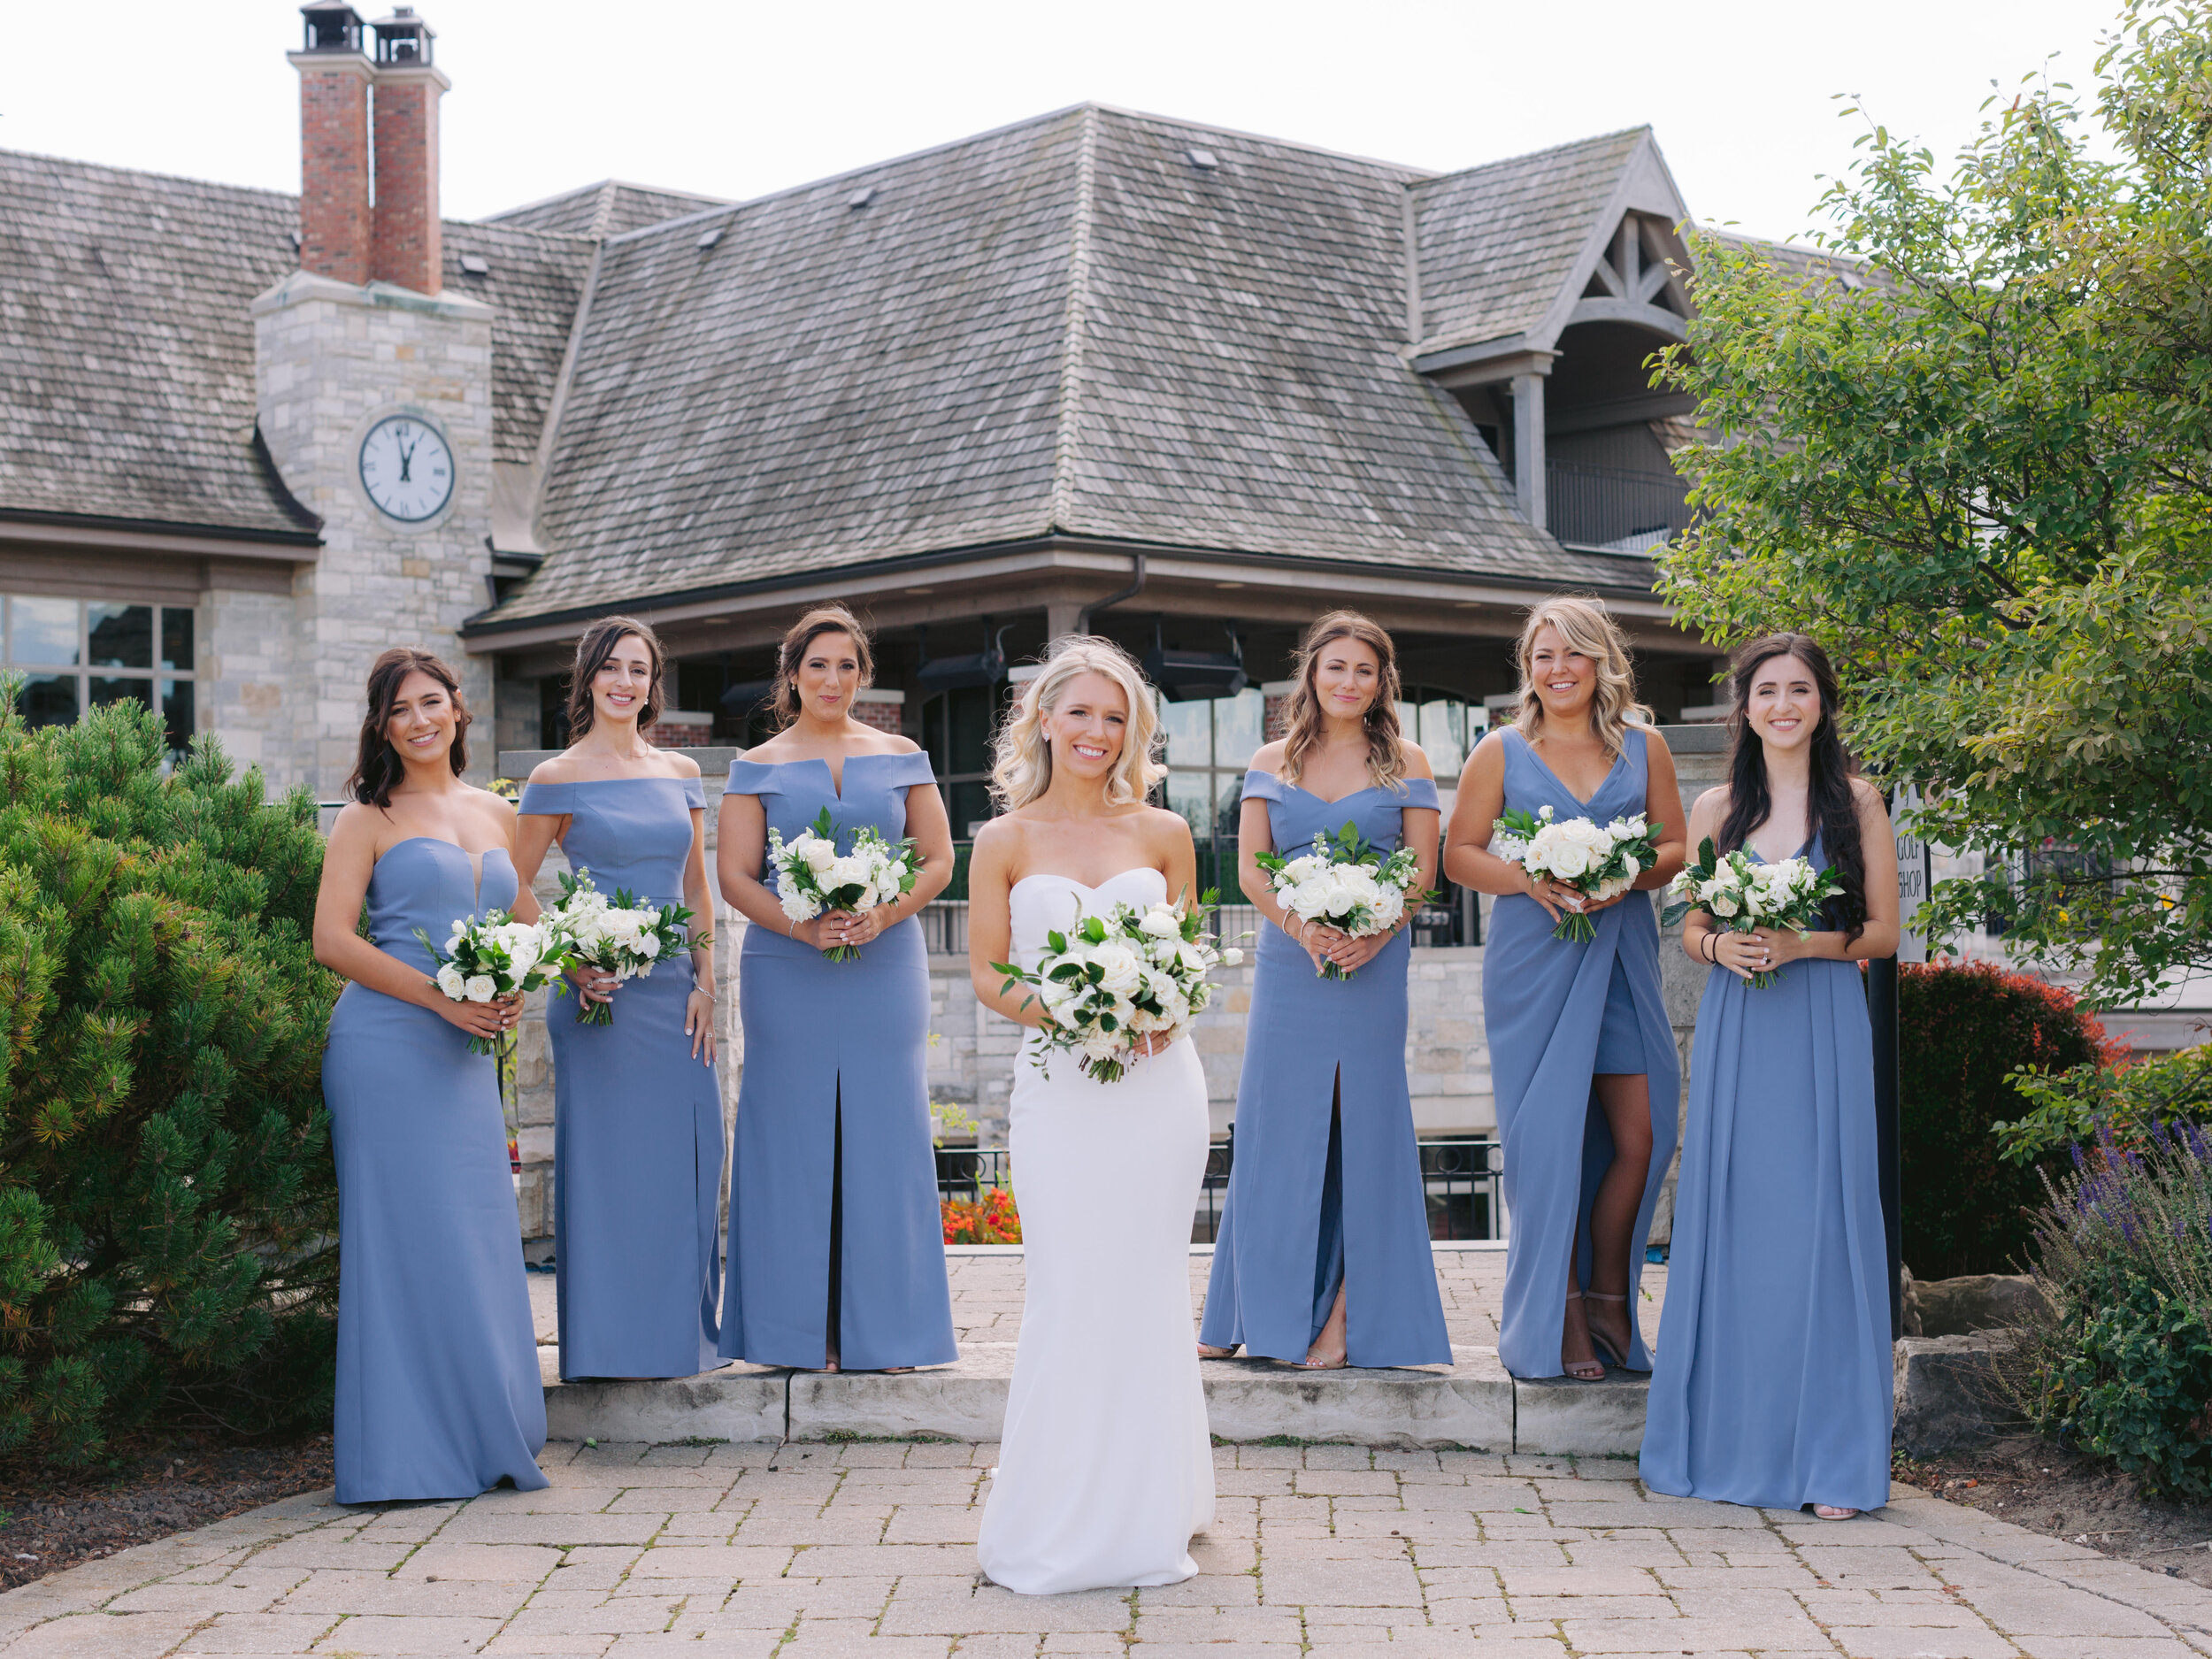 First Look_Bridal Party Portraits (41 of 234).JPG